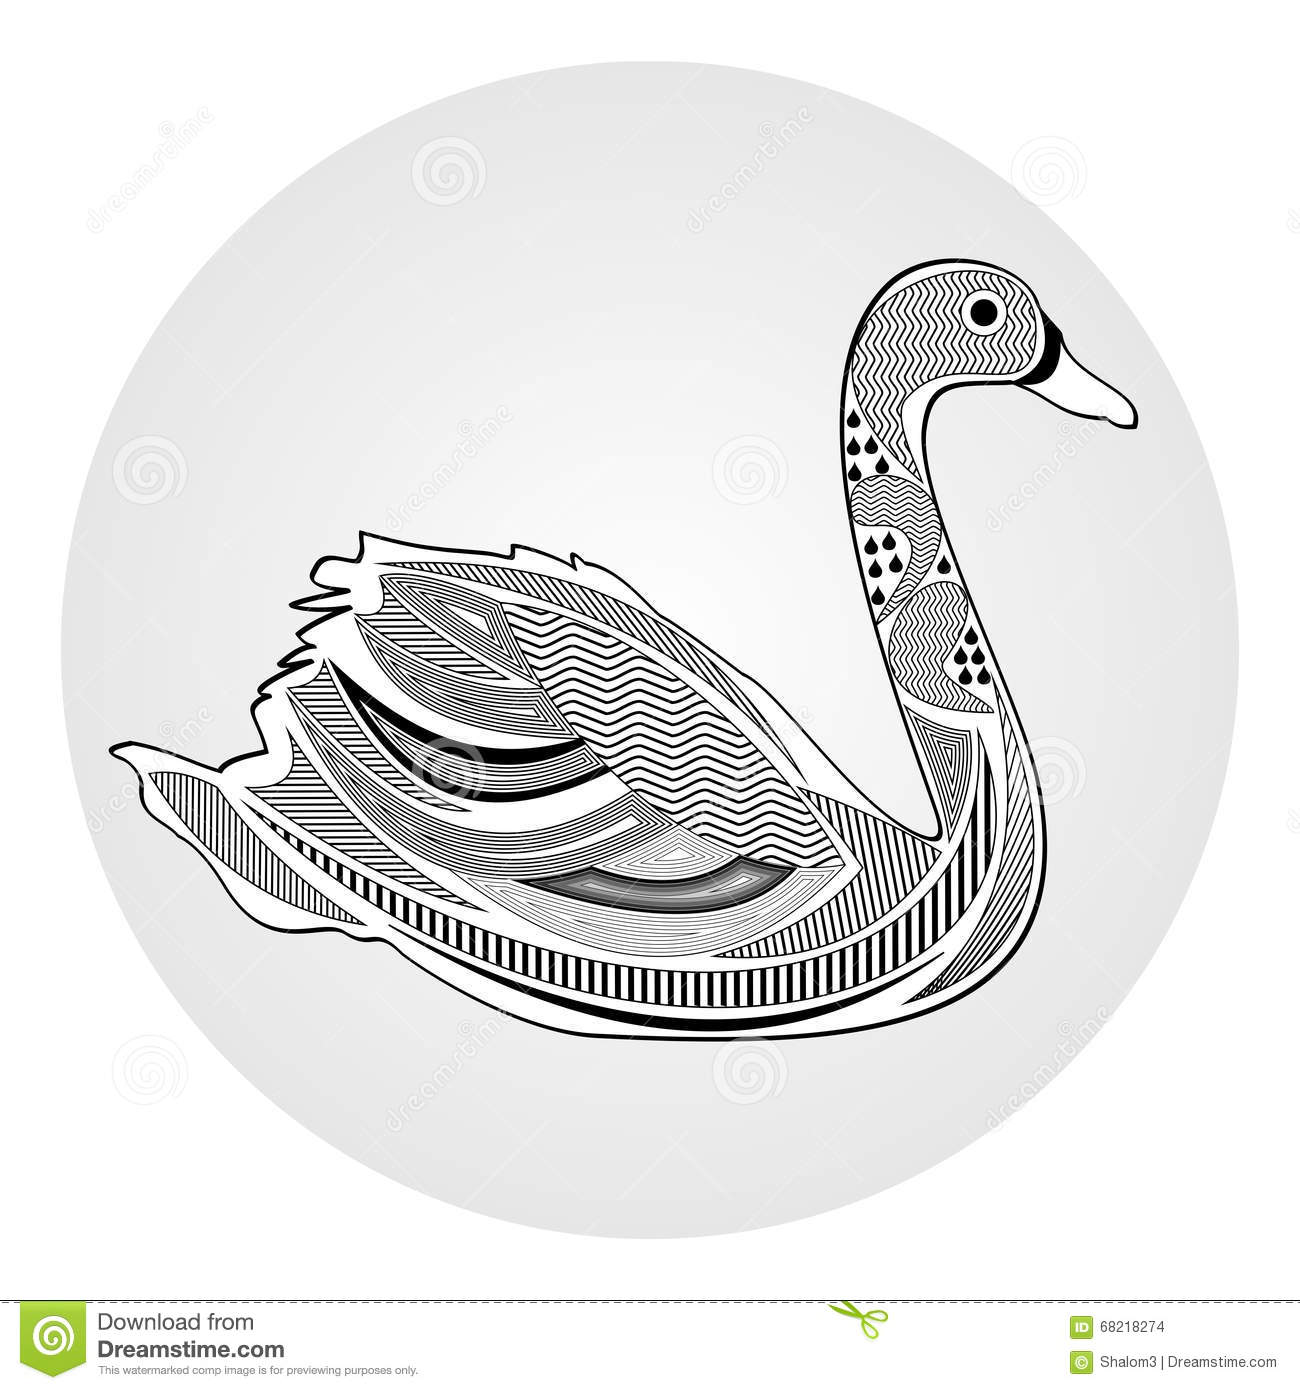 swan black and white drawing with hatched and patterned body parts